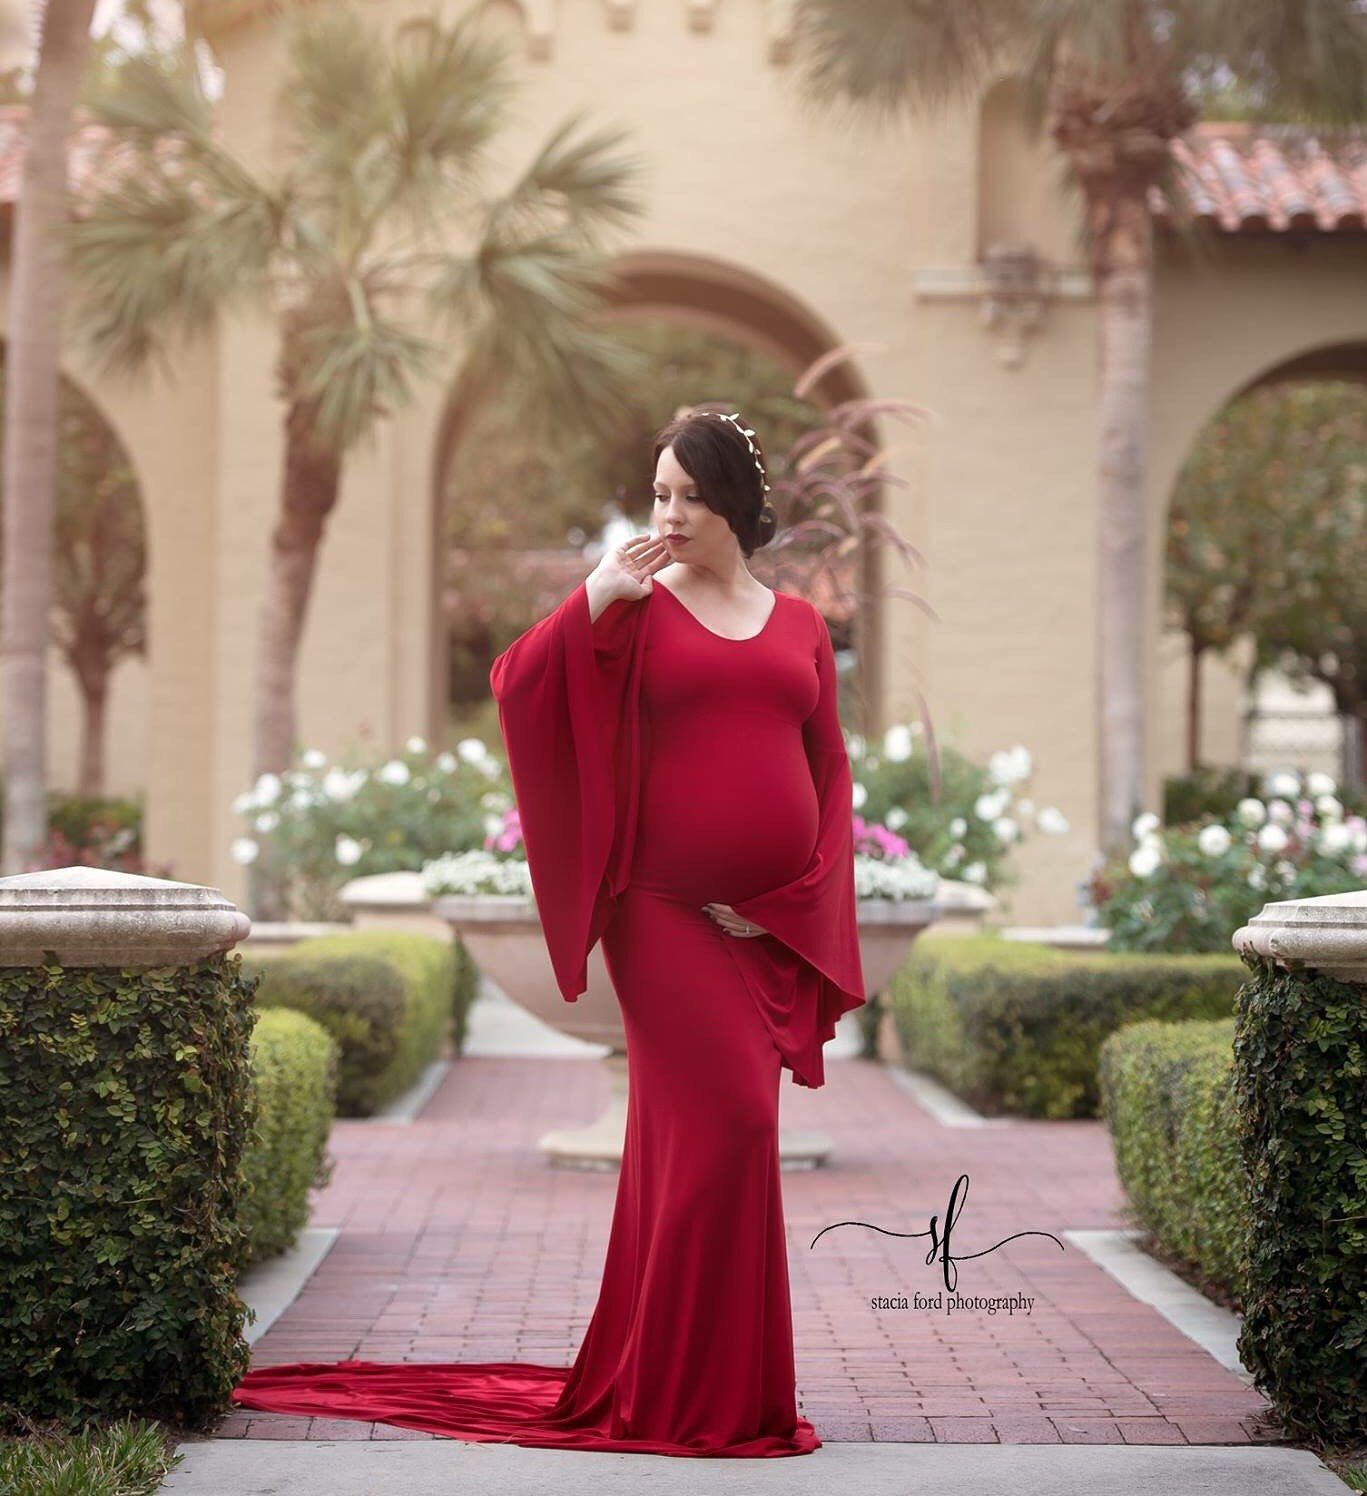 Thea maternity dress boat neckline long bell sleeves maternity thea maternity dress boat neckline long bell sleeves maternity photo prop dress red maternity gown long train ombrellifo Images